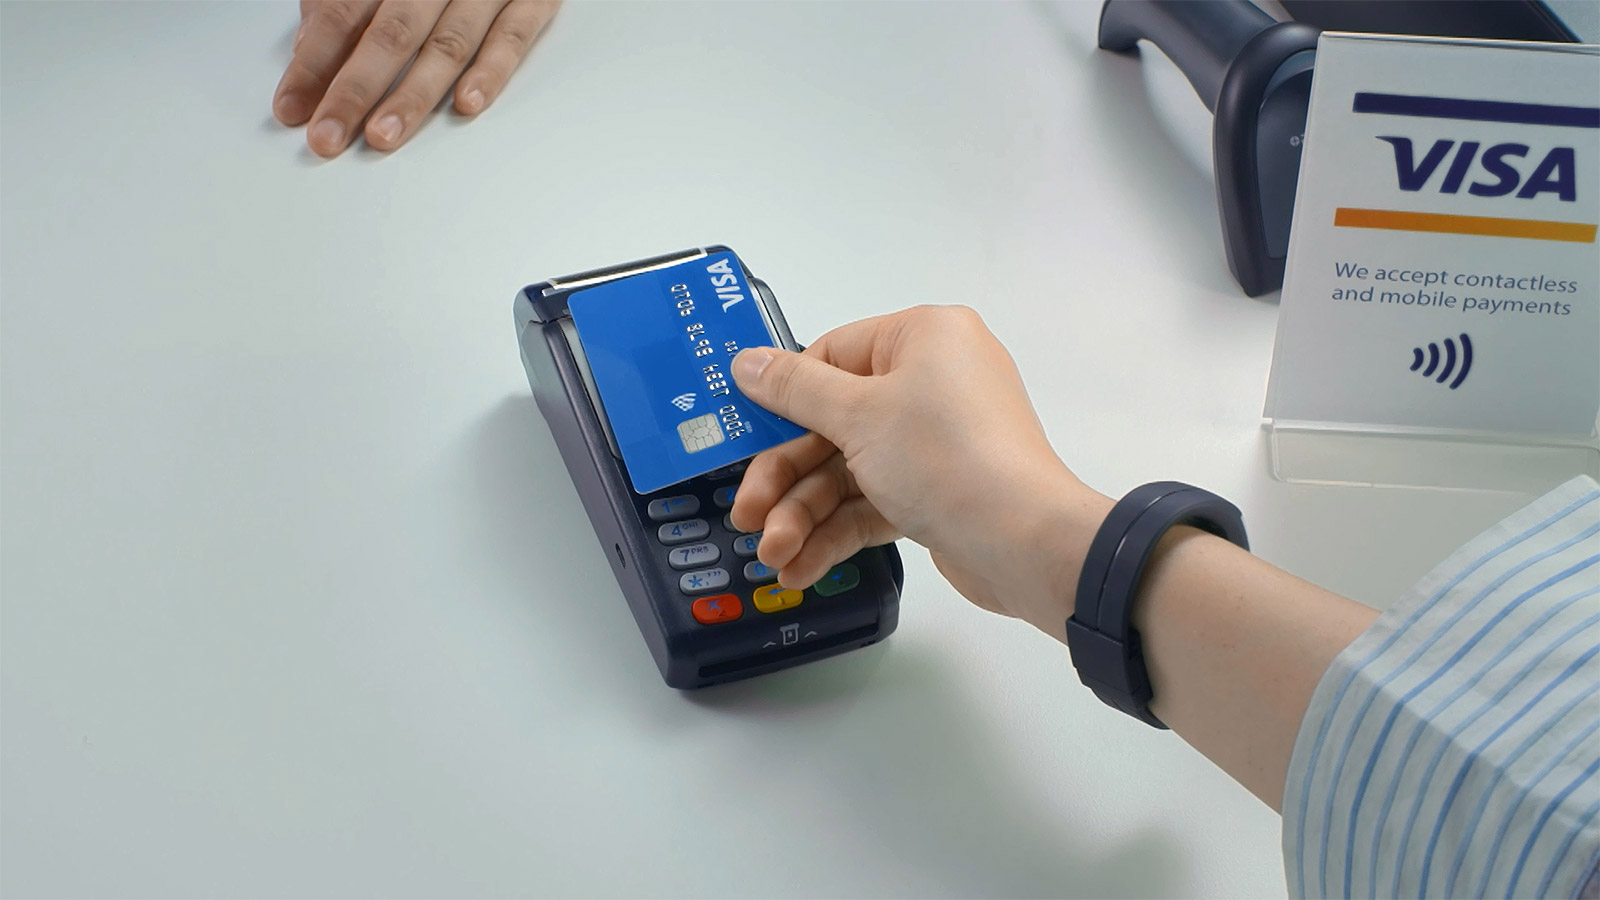 Paying with Visa contactless card